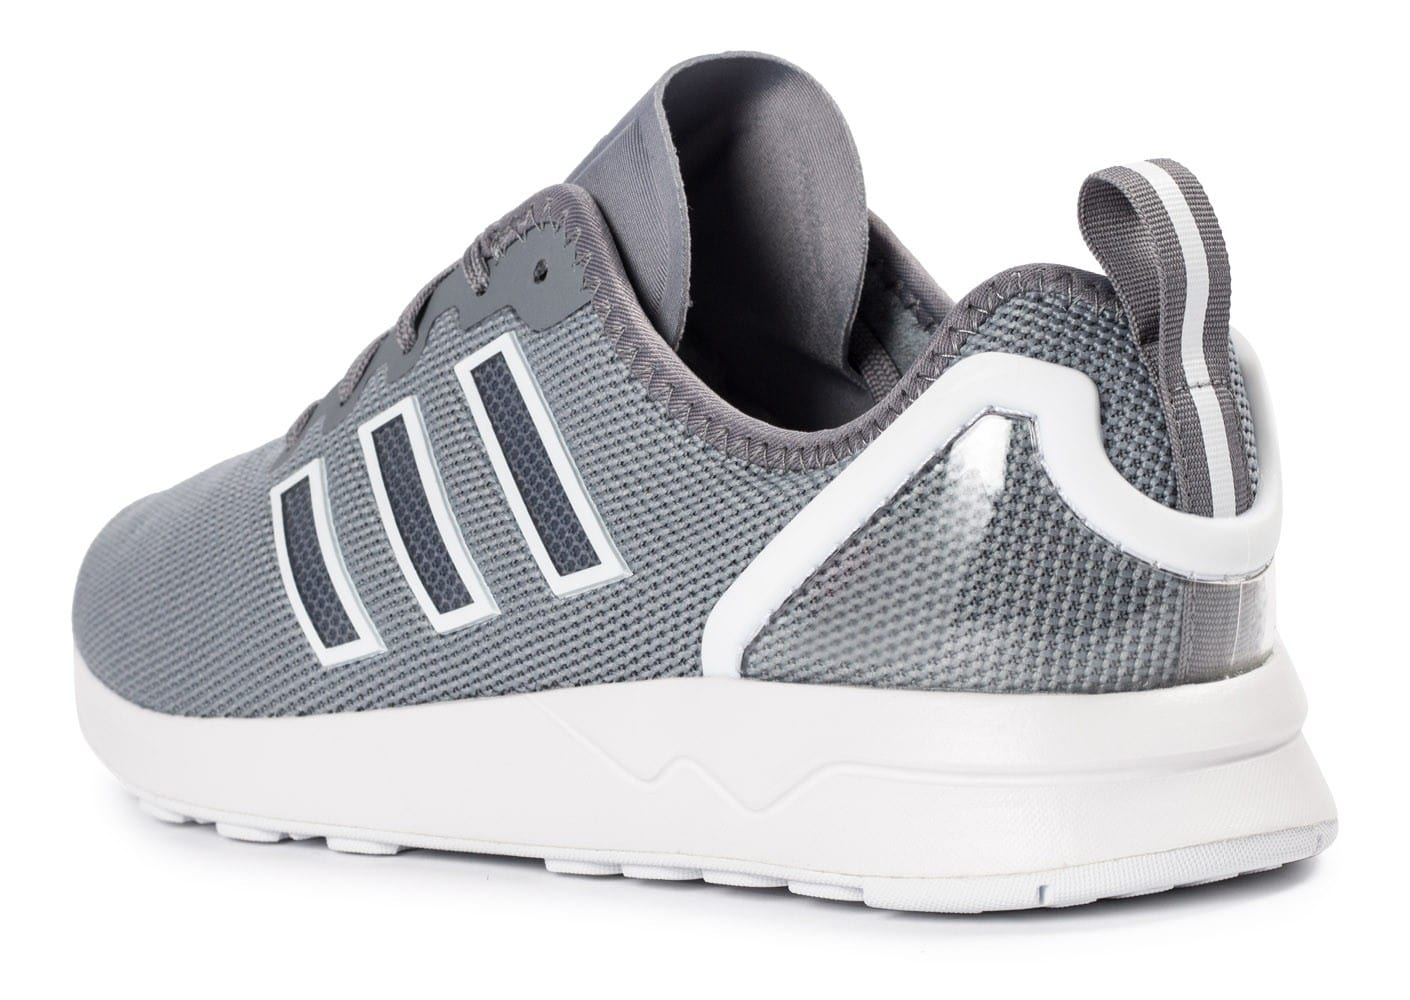 new product 0e1bb 0fa06 Adidas Zx Flux Adv Gris Dhjga6738